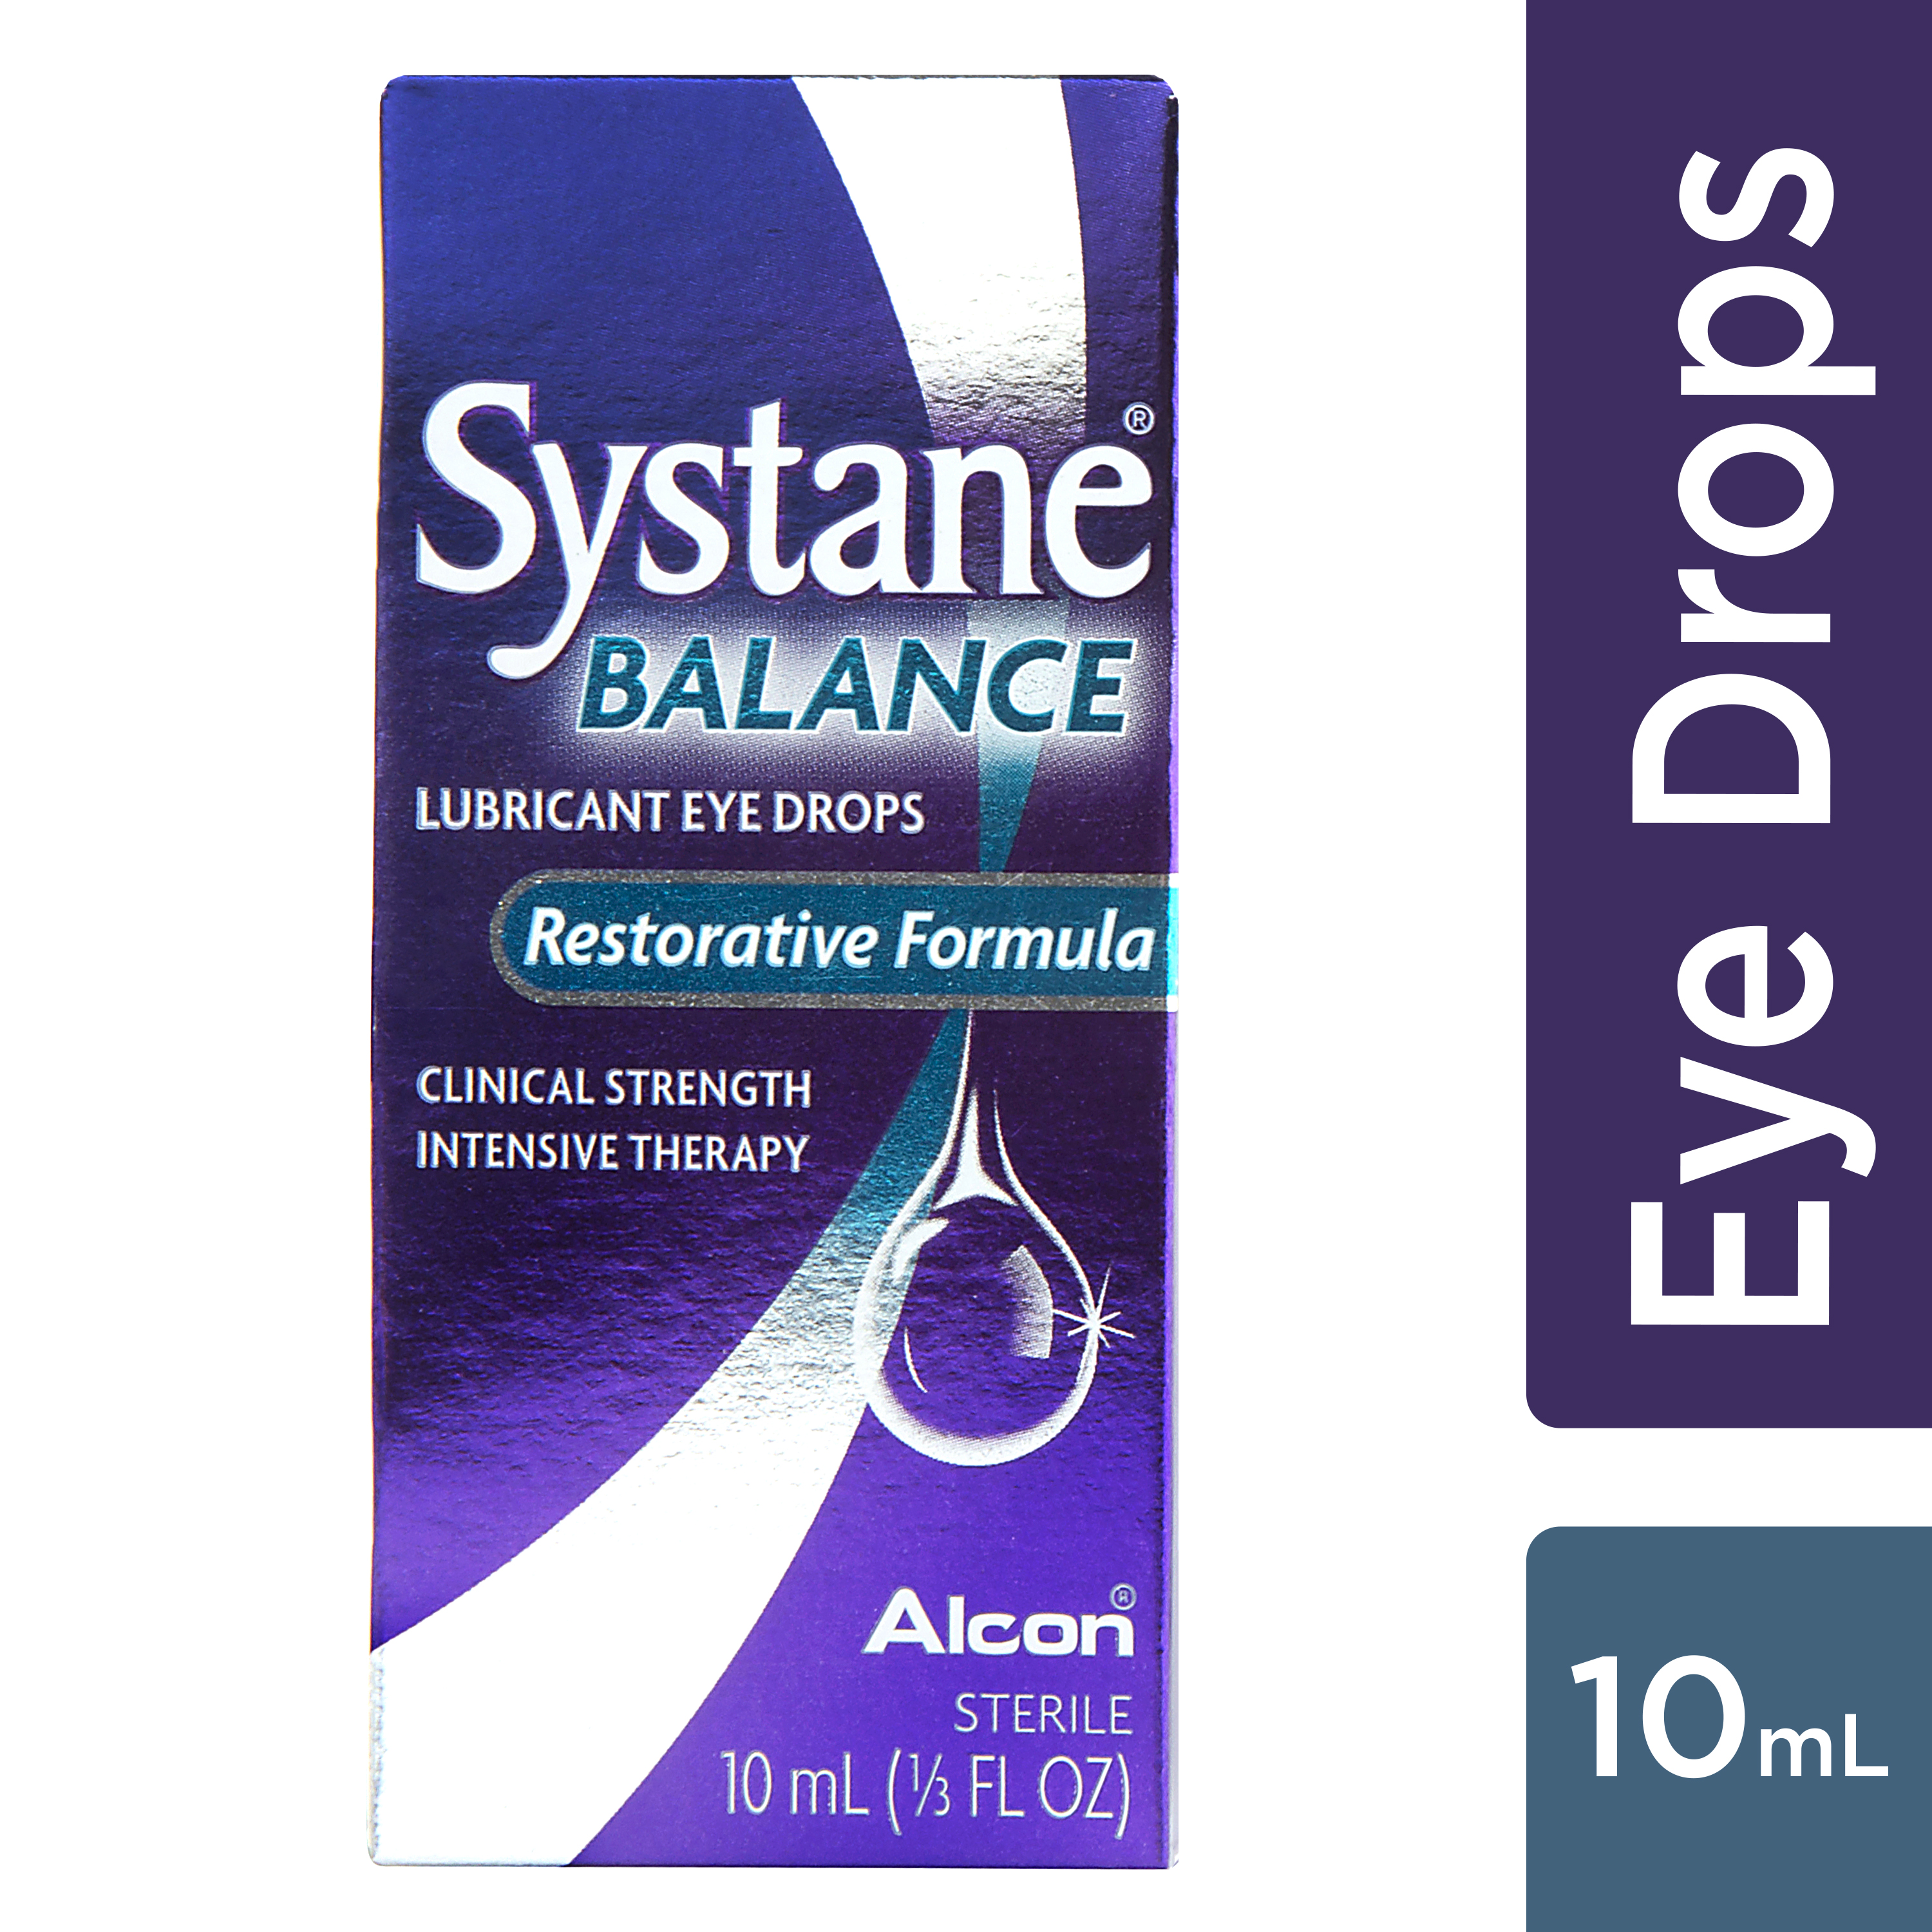 SYSTANE BALANCE Lubricating Eye Drops for Dry Eyes Symptoms, 10mL